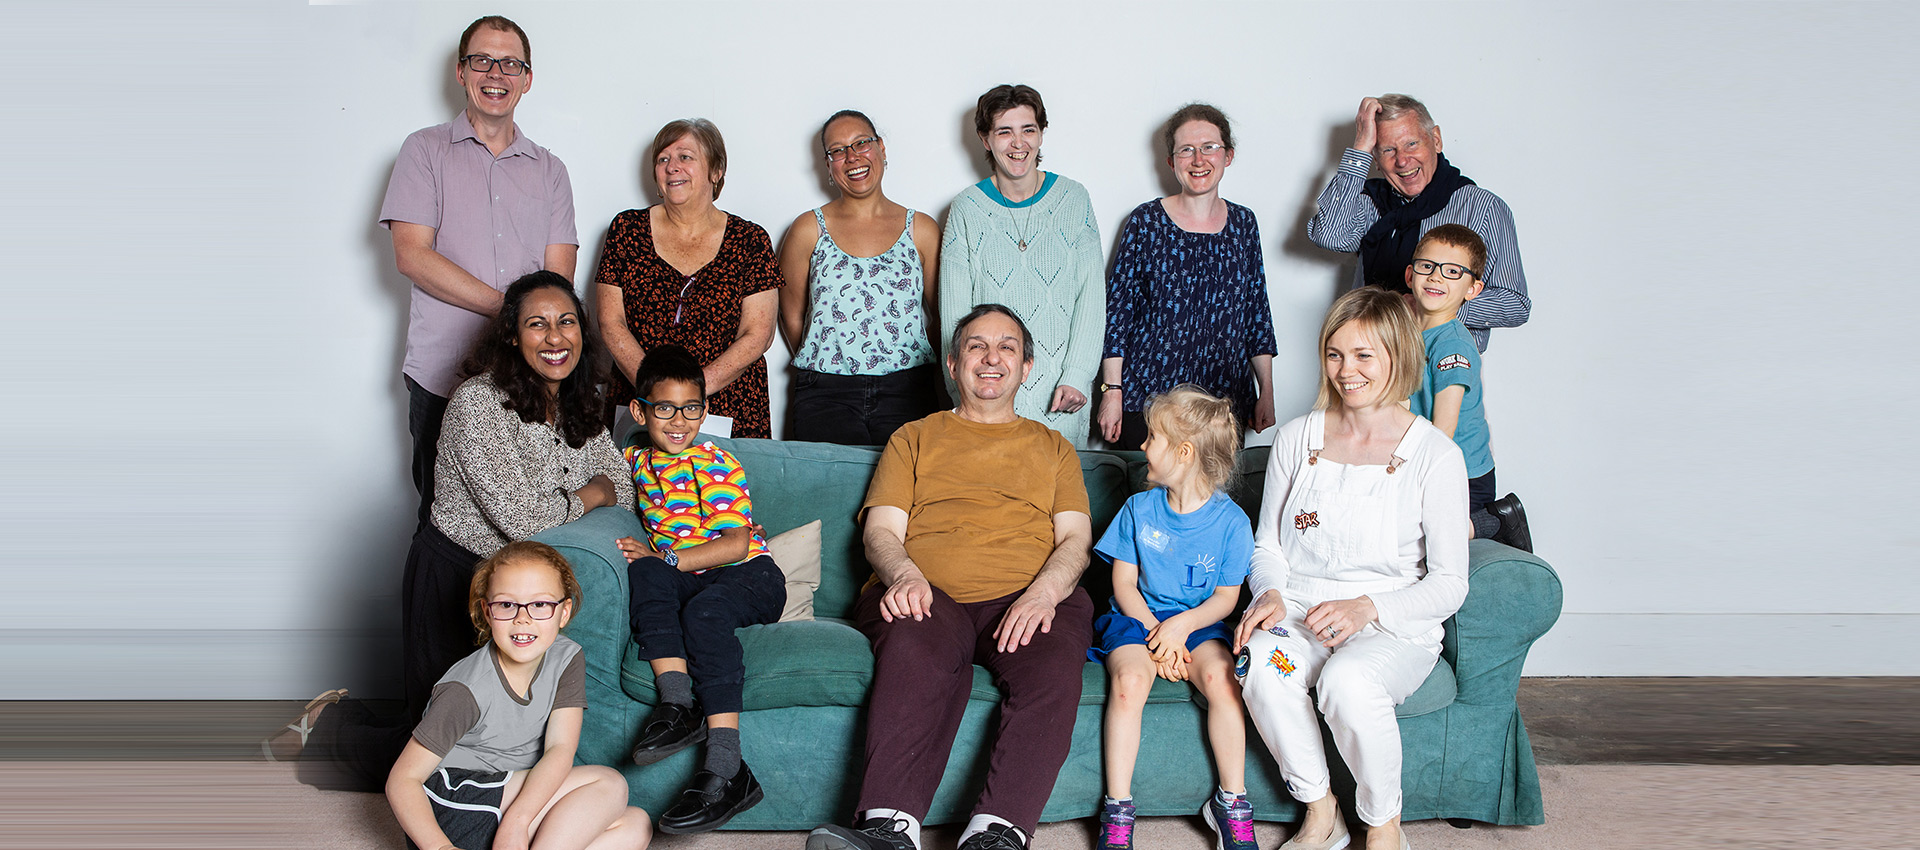 12 people laughing at the camera, a mixture of adults and children